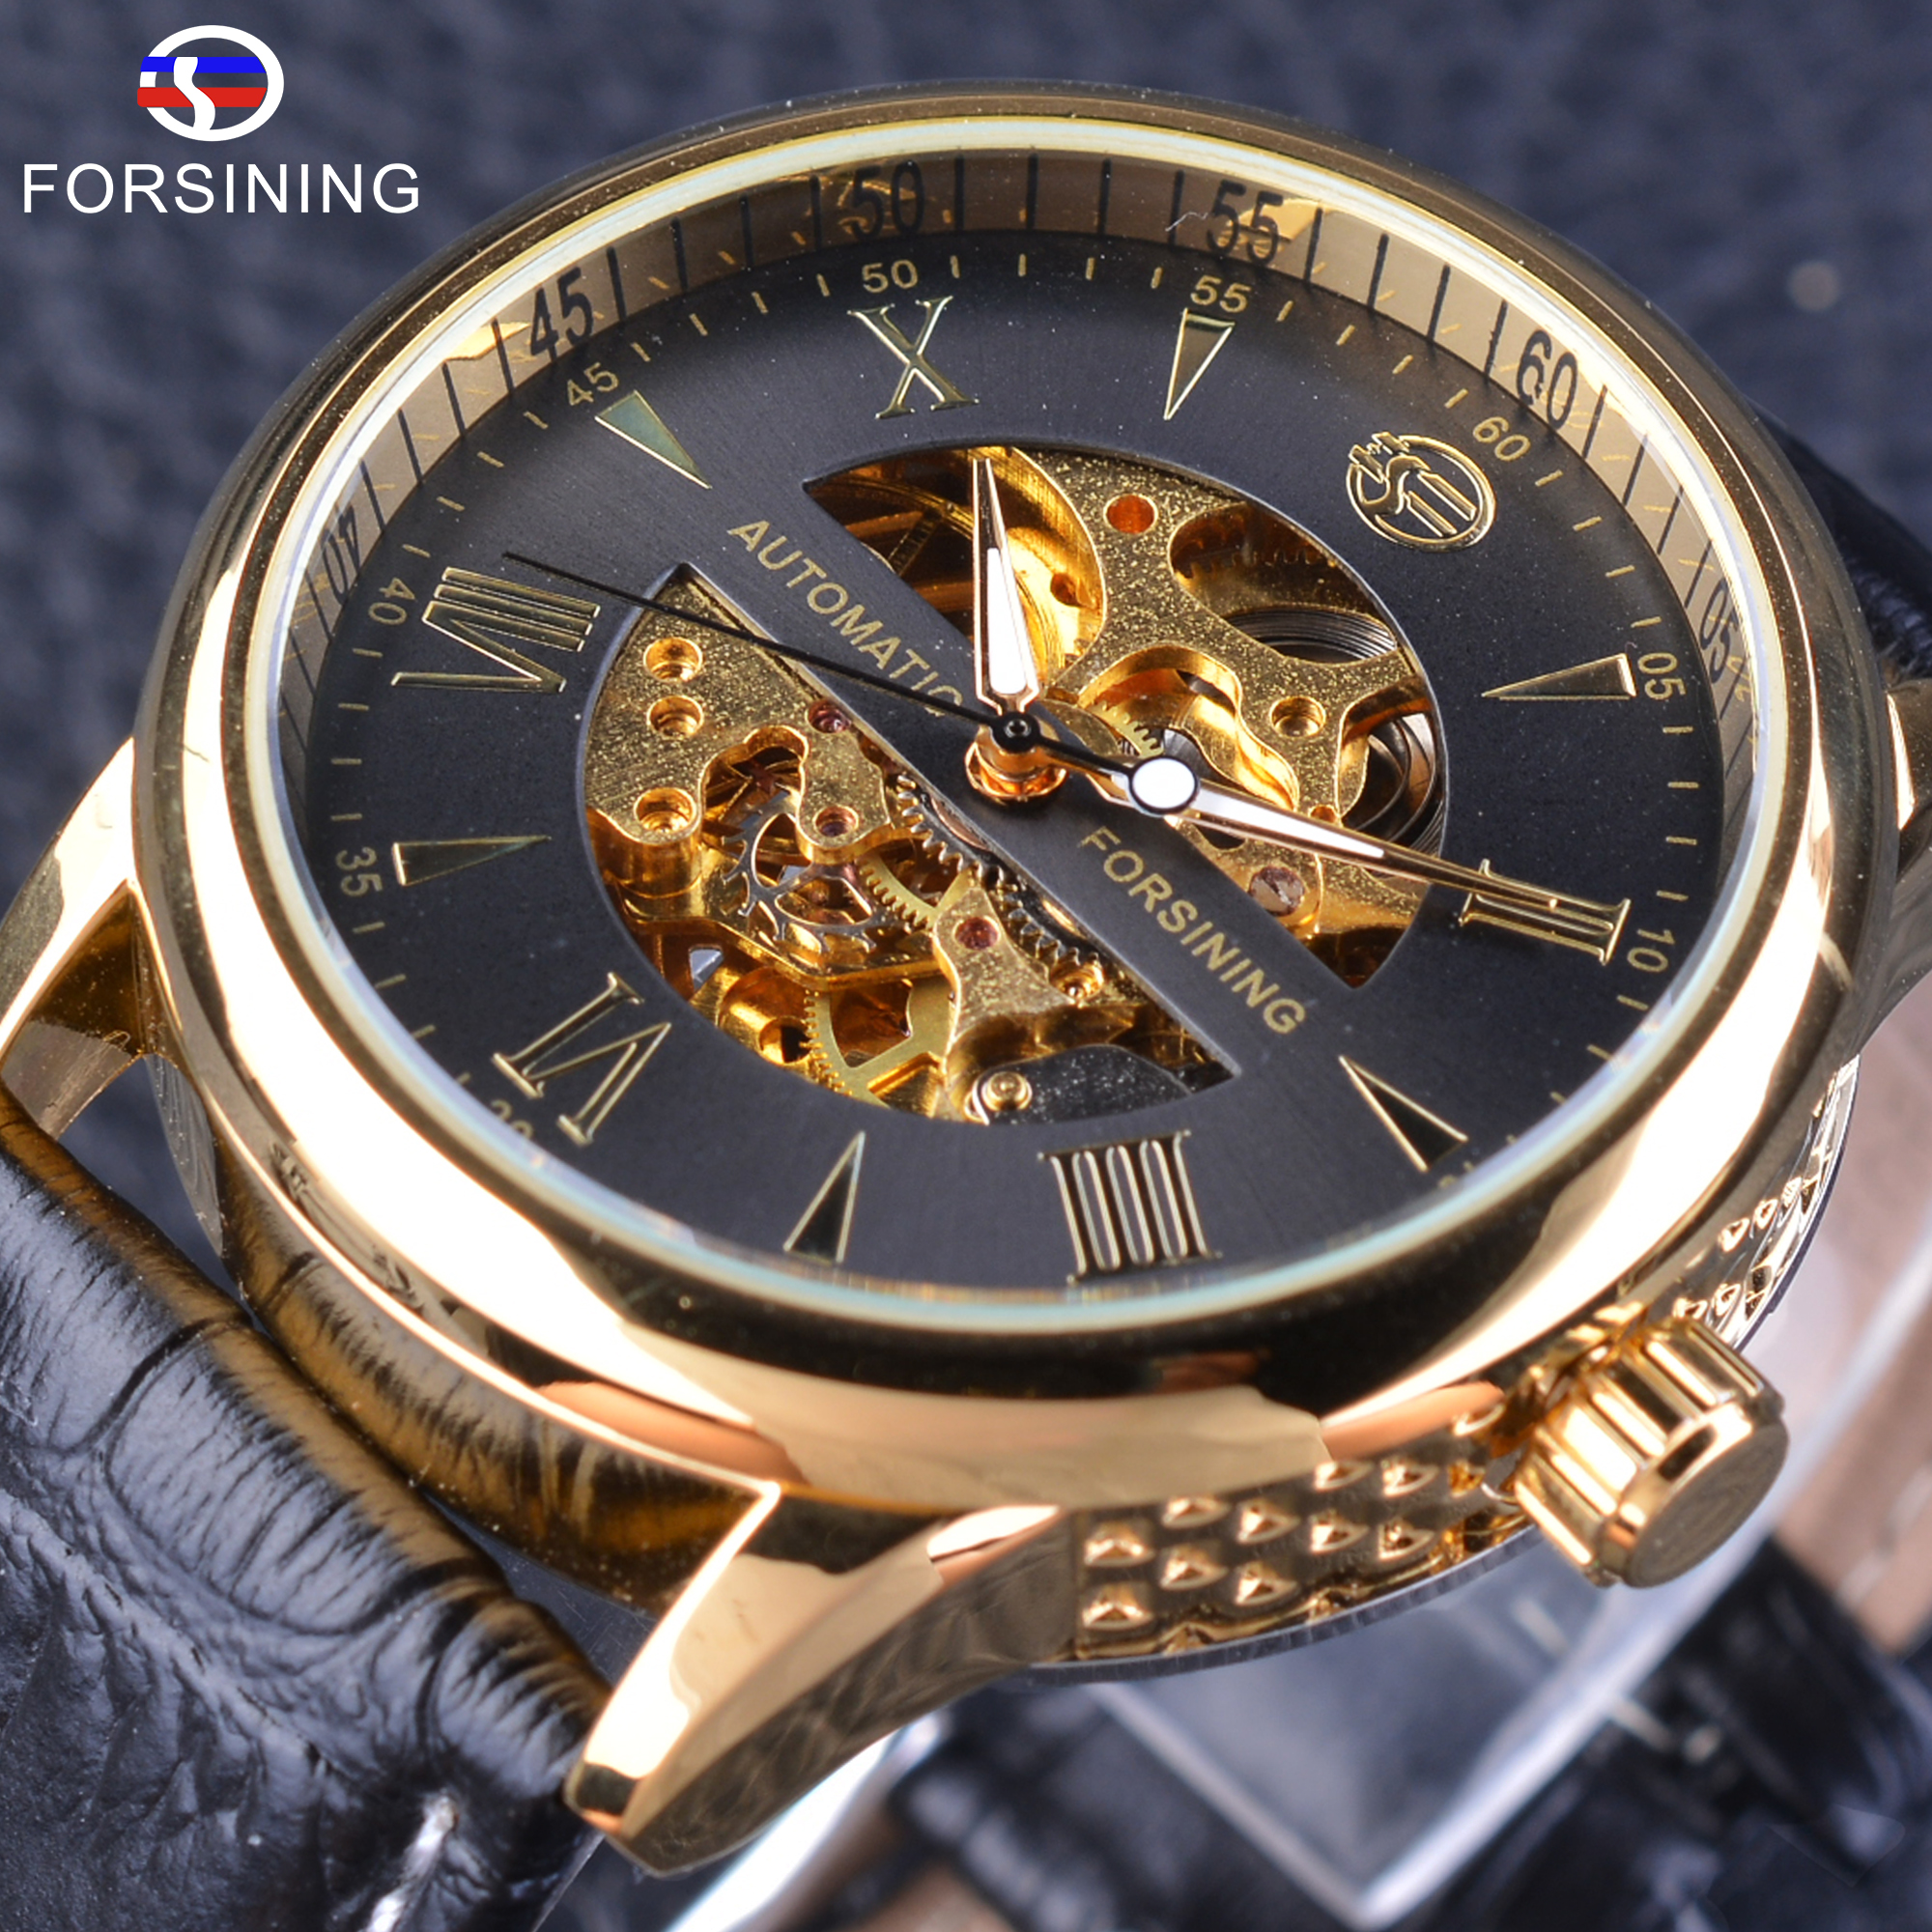 Forsining Mens Watches Top Brand Luxury Automatic Self-winding Watch Fashion Skeleton Mechanical Wristwatch Genuine Leather Belt top brand binger fashion casual watch female form hollow automatic mechanical watches self winding women waterproof leather